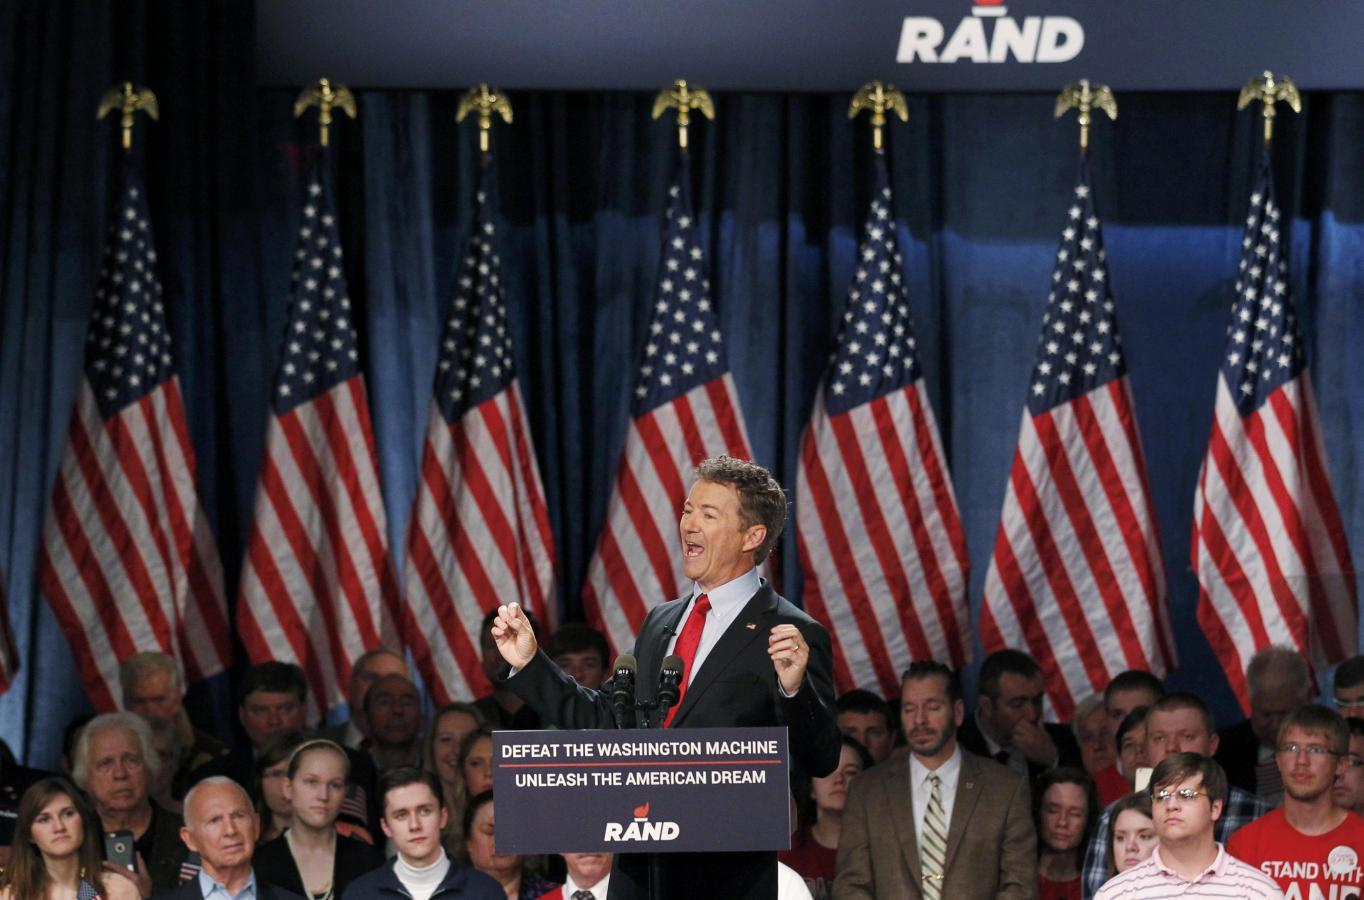 Rand Paul criticizes fellow Republicans as he launches White House bid